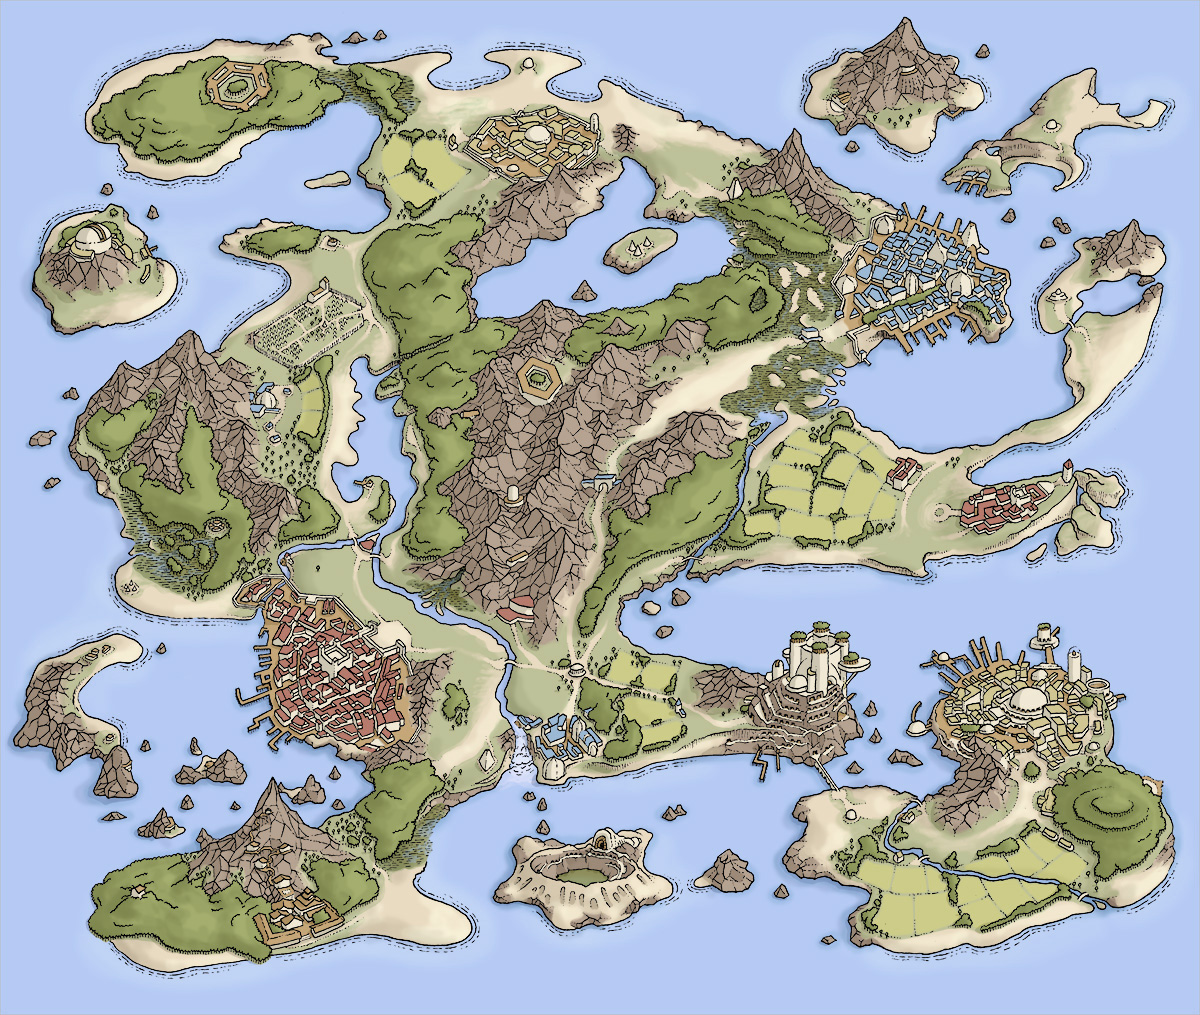 Drawn island With three map fantastical drawn